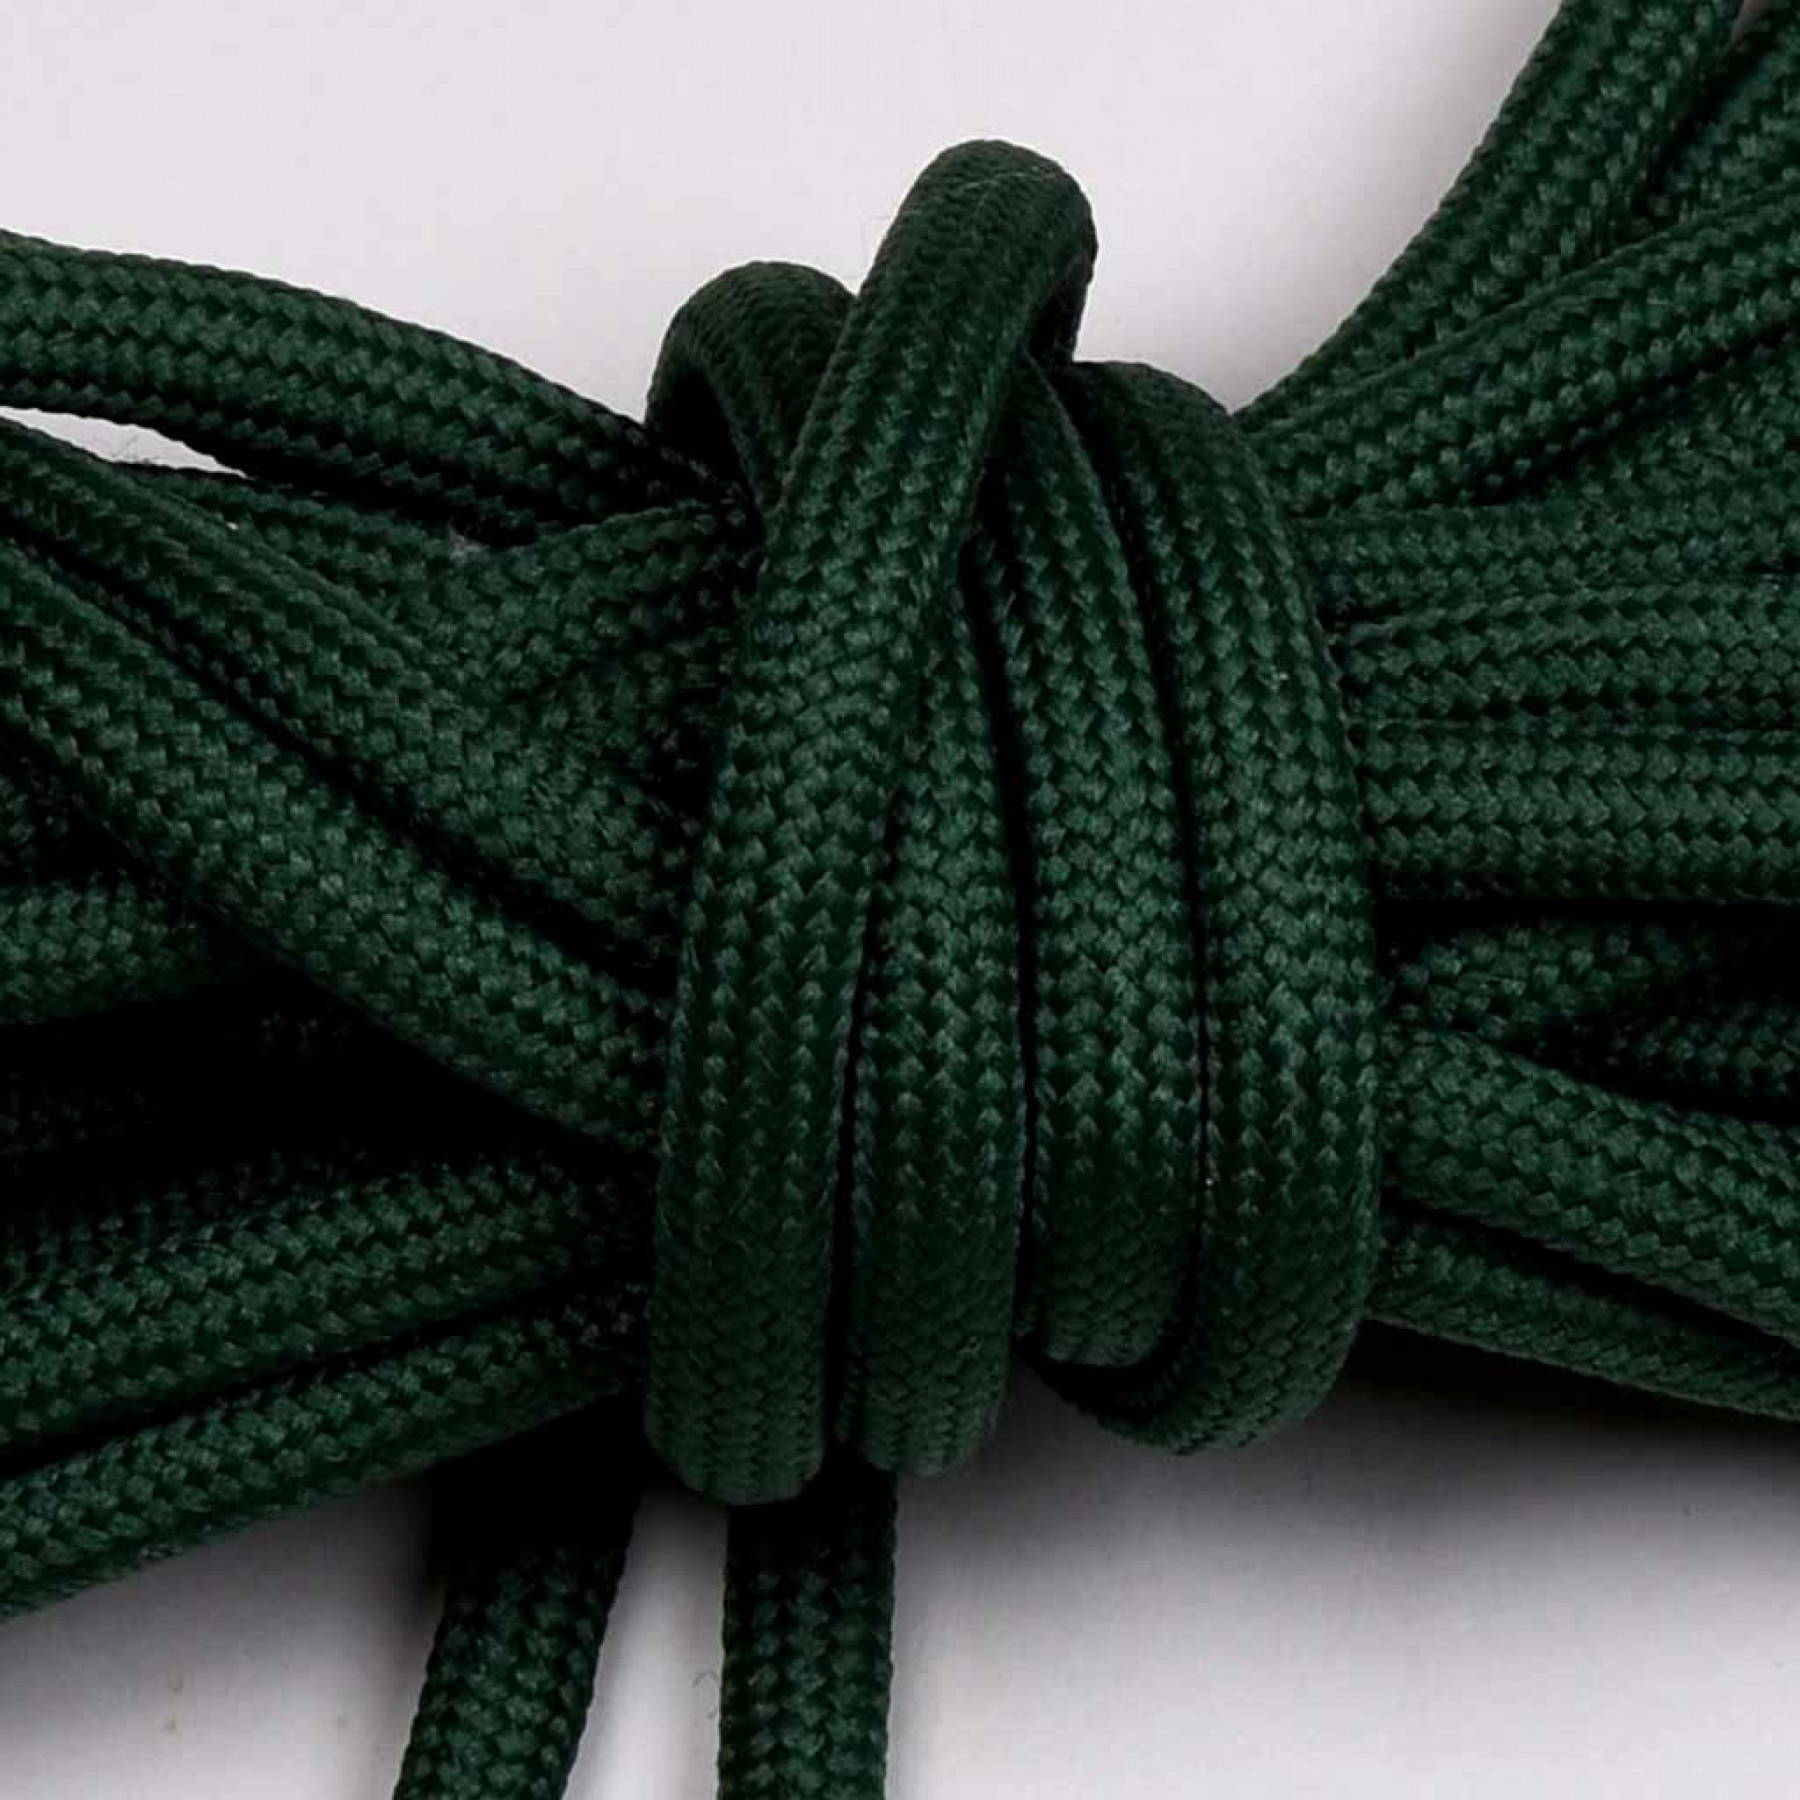 Laces for Biker Boot SE, 230cm long, green